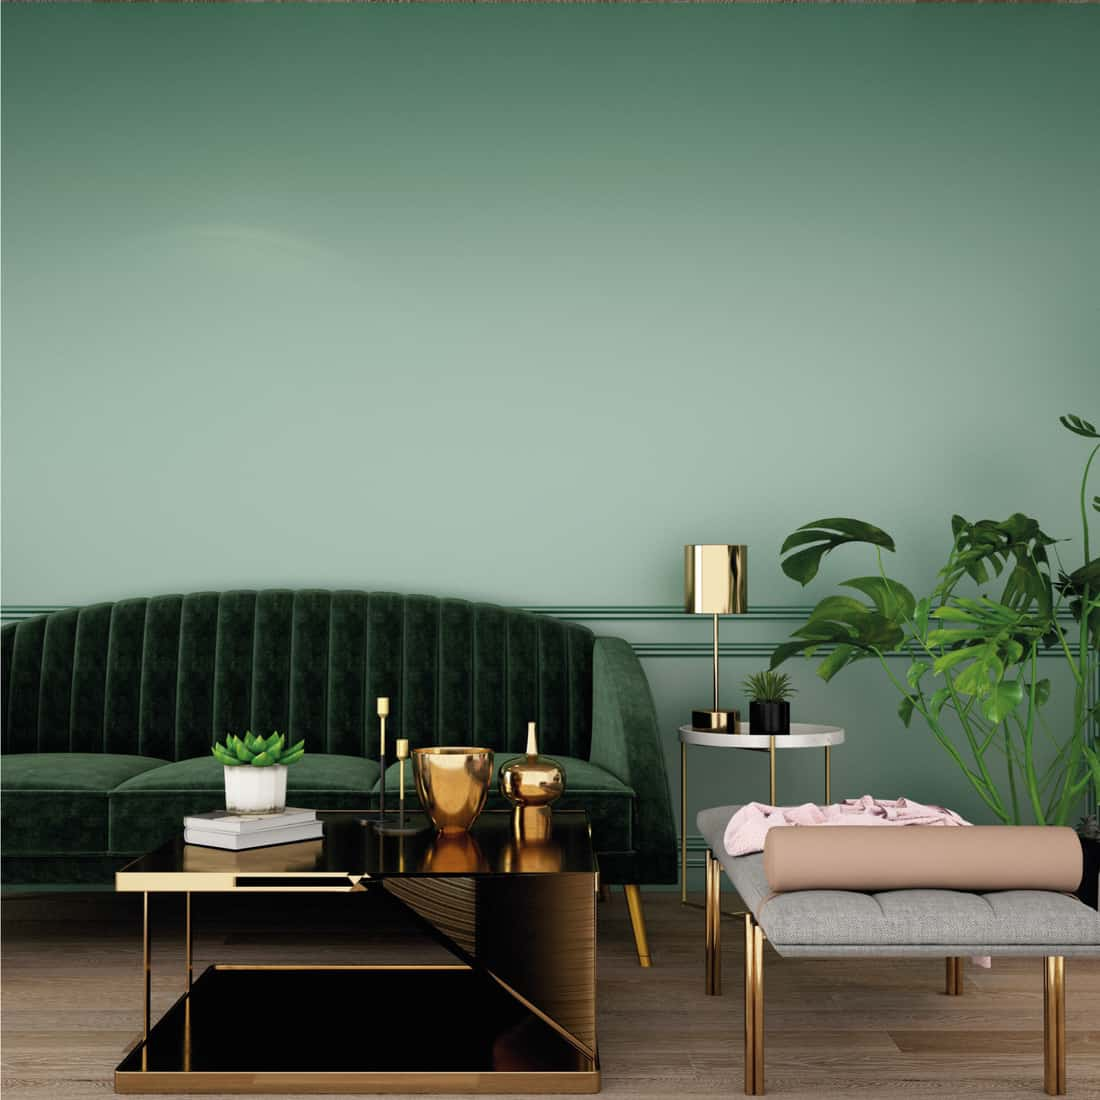 Living area with sofa, armchair, plant and cabinet on wooden floor